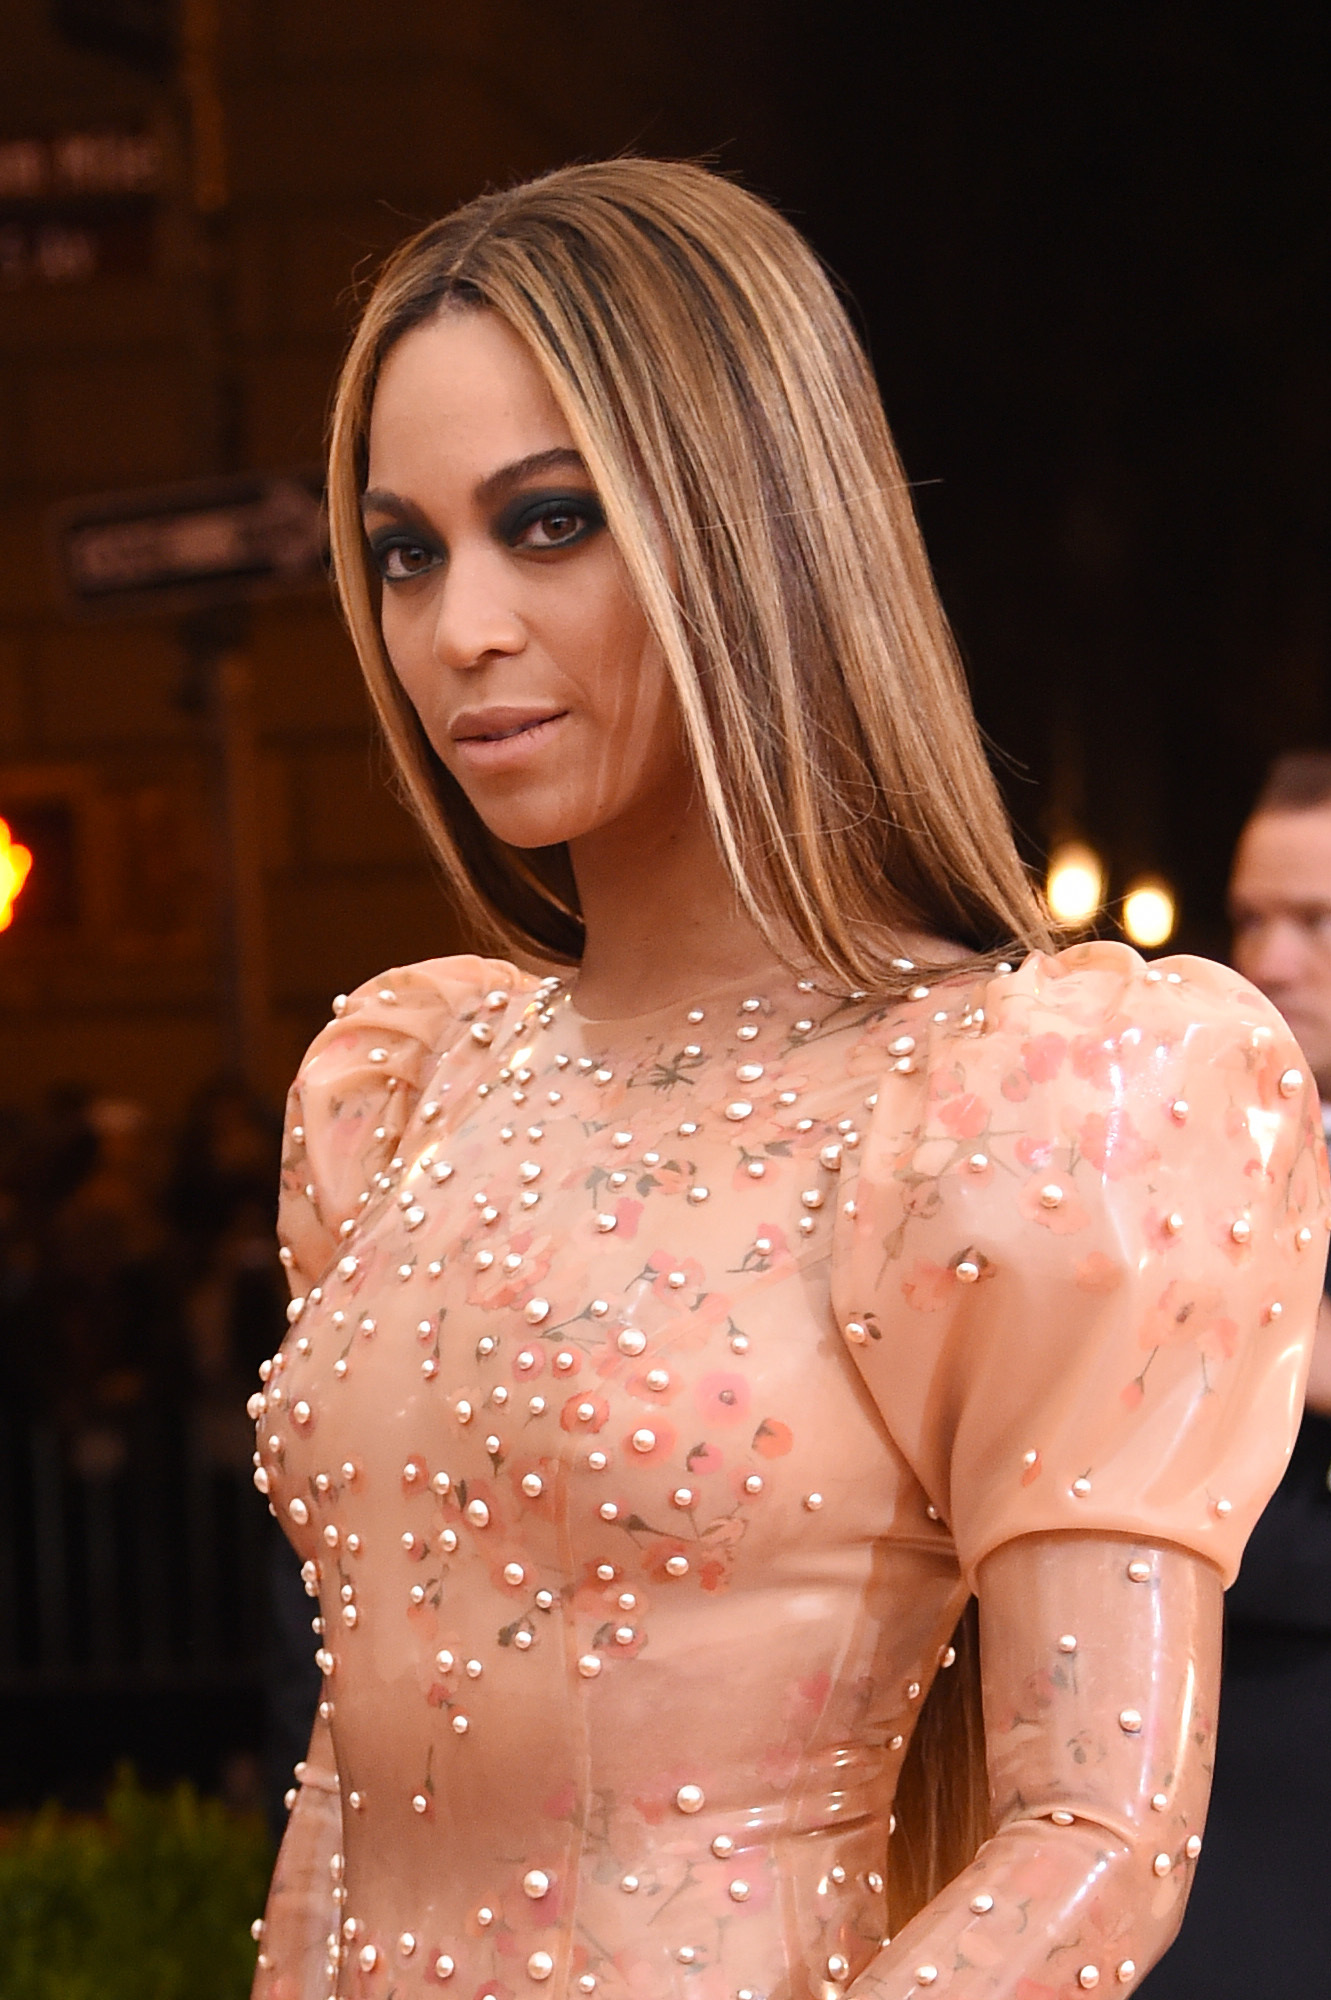 Why did Jay Z skip the Met Gala?